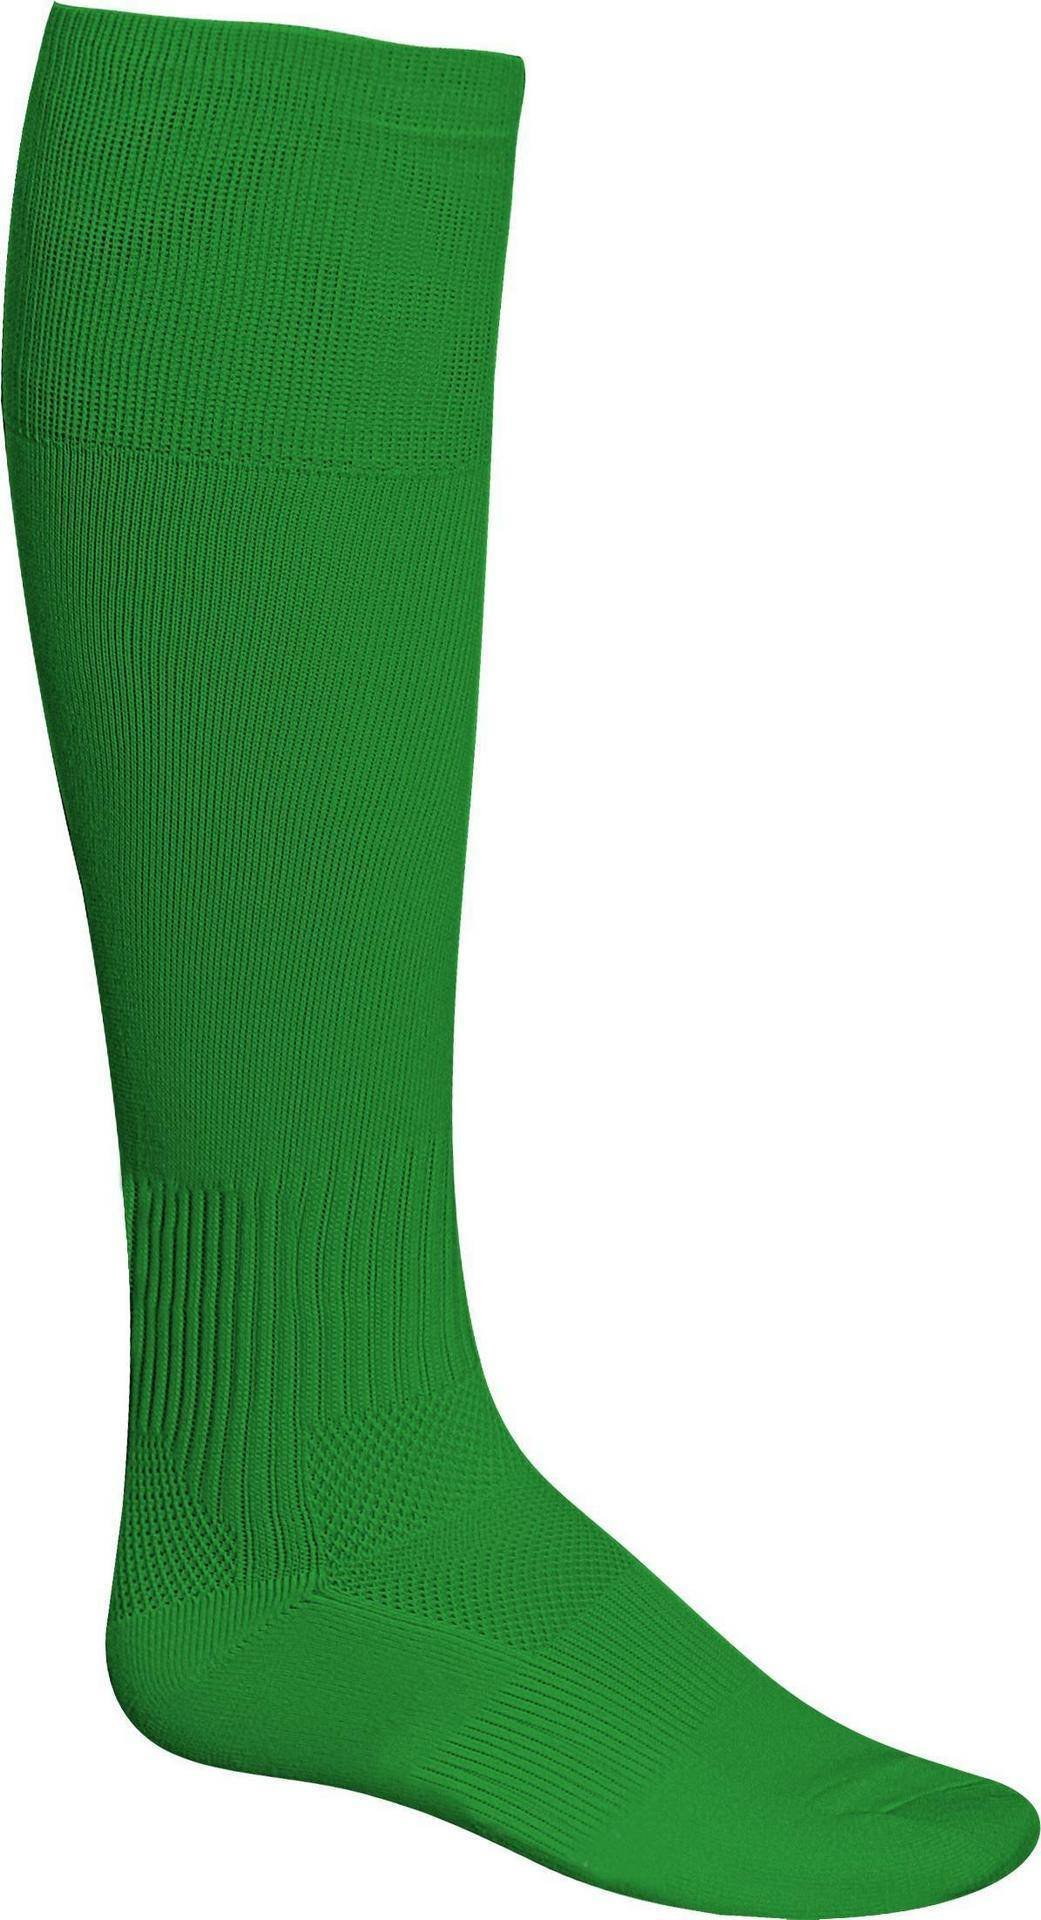 Admiral Professional Soccer Socks, Emerald, Adult by Admiral